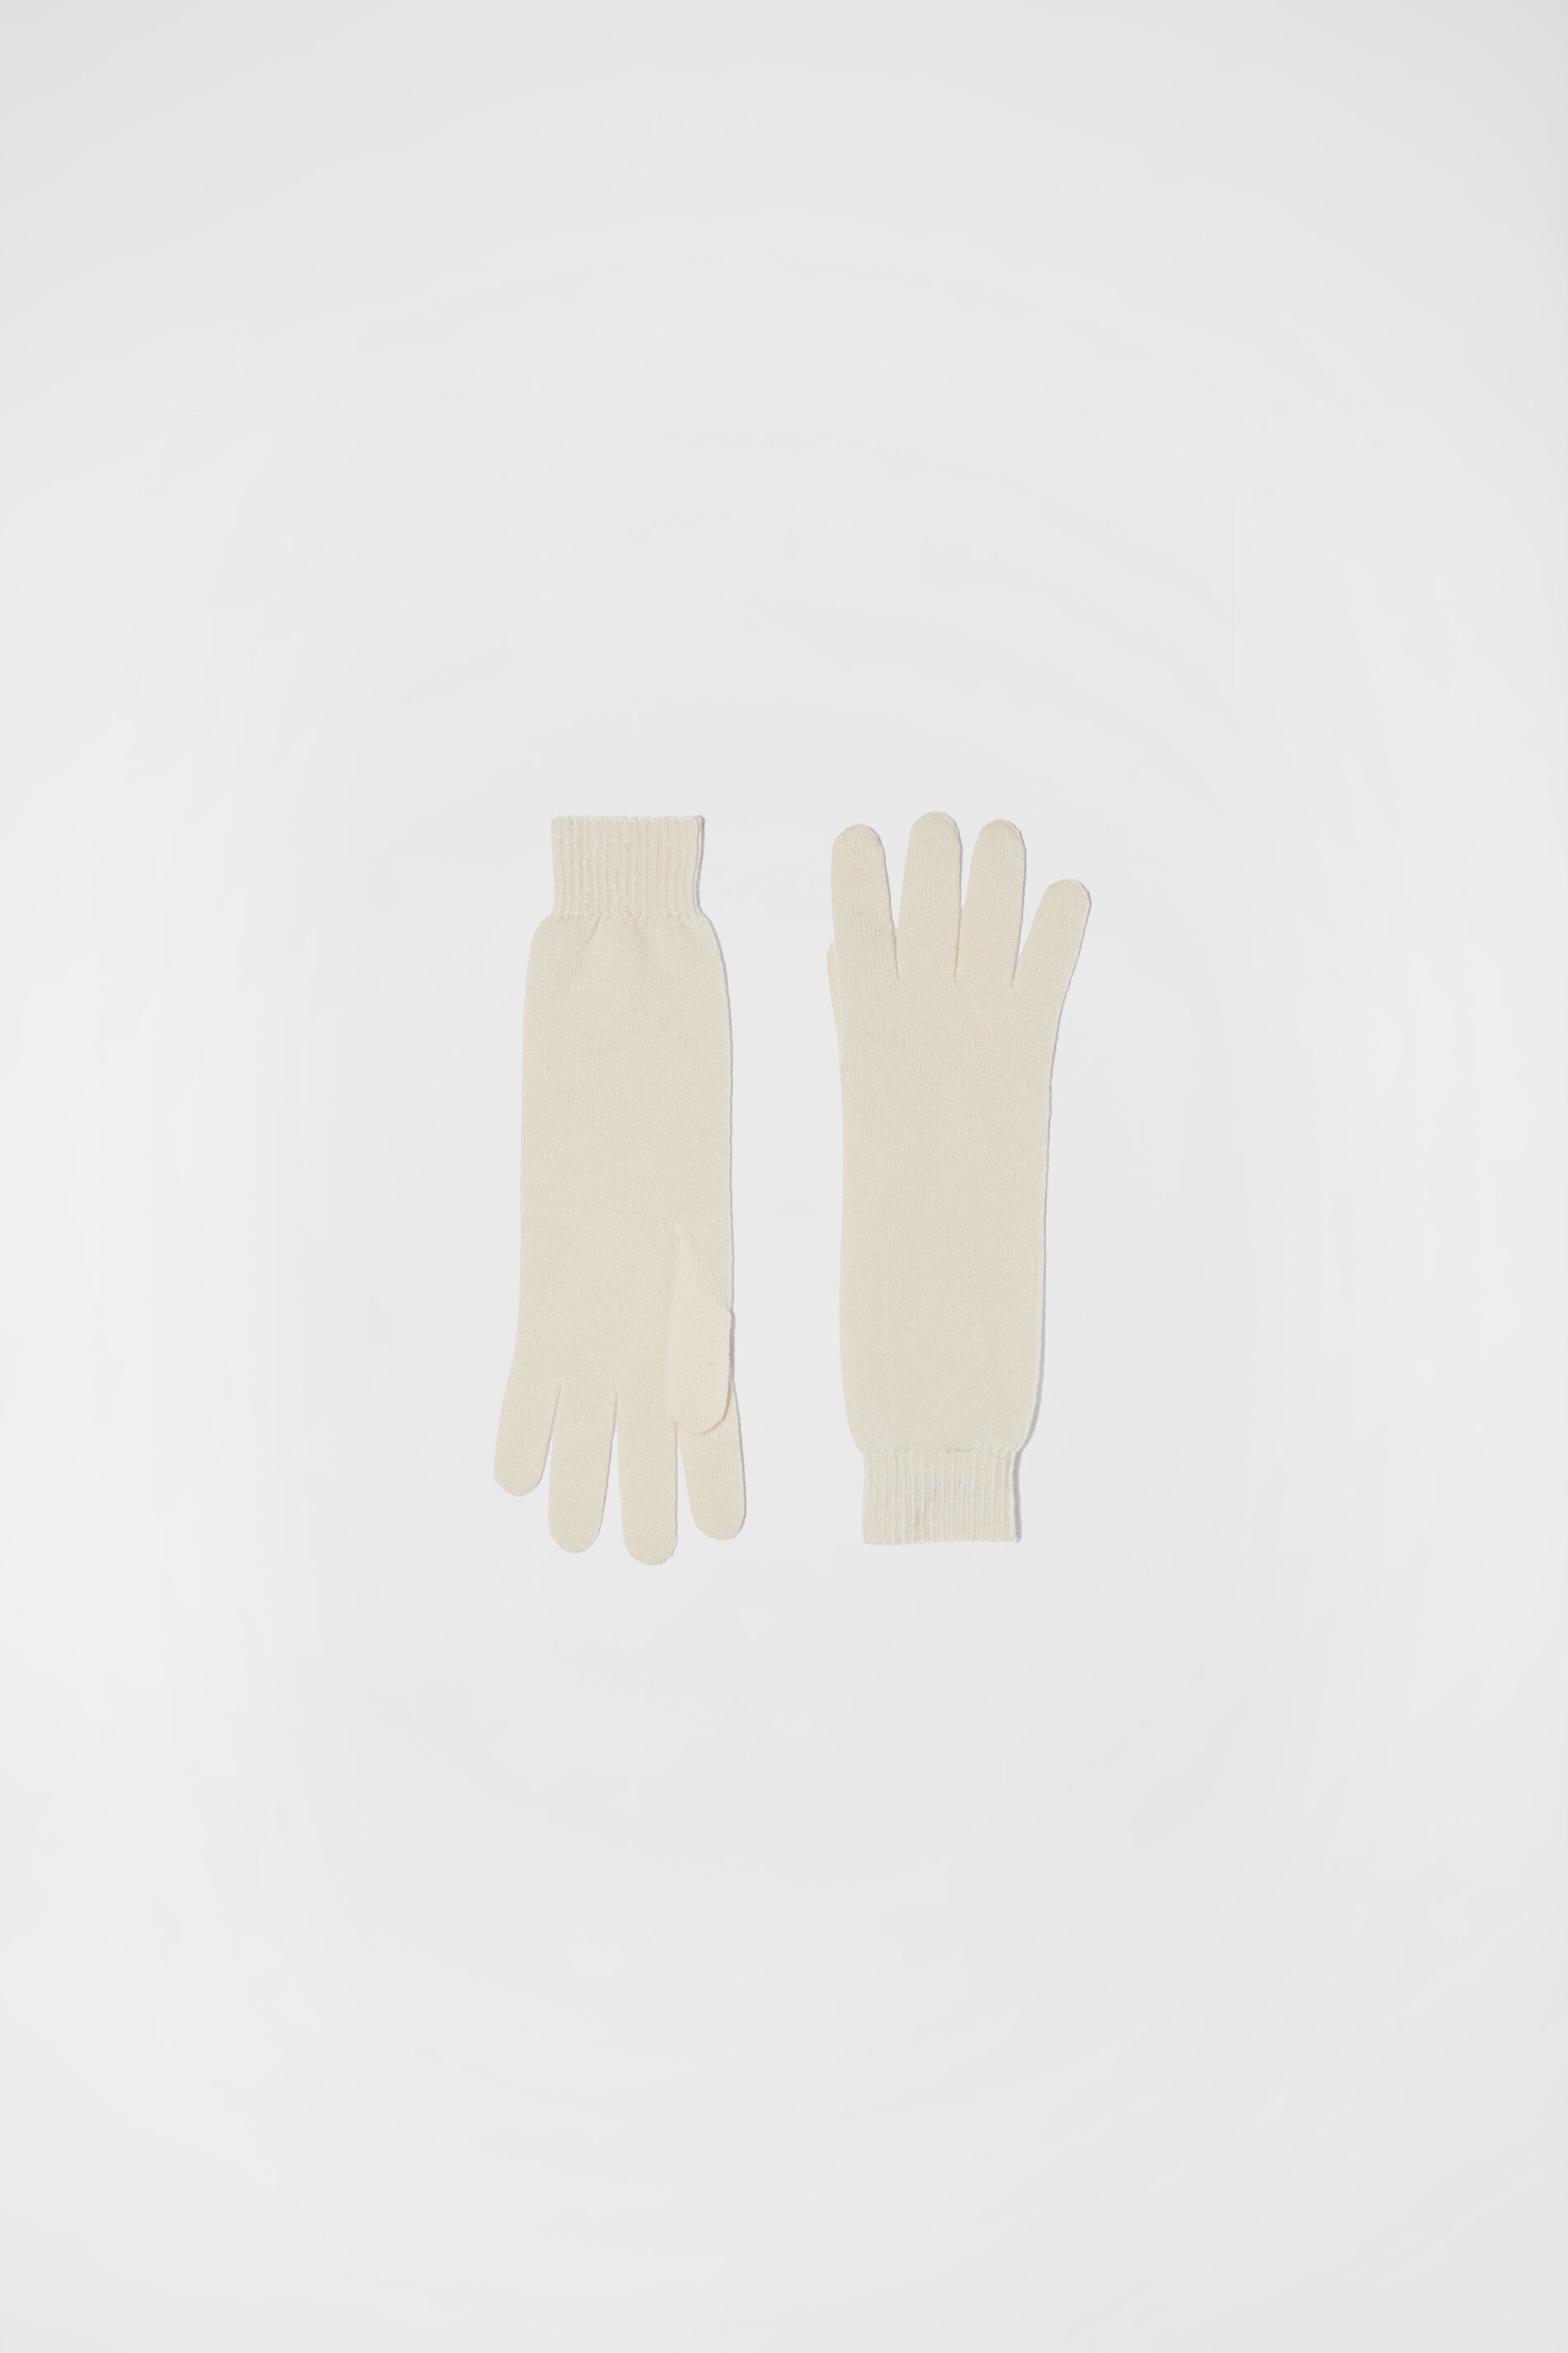 Gloves, natural, large